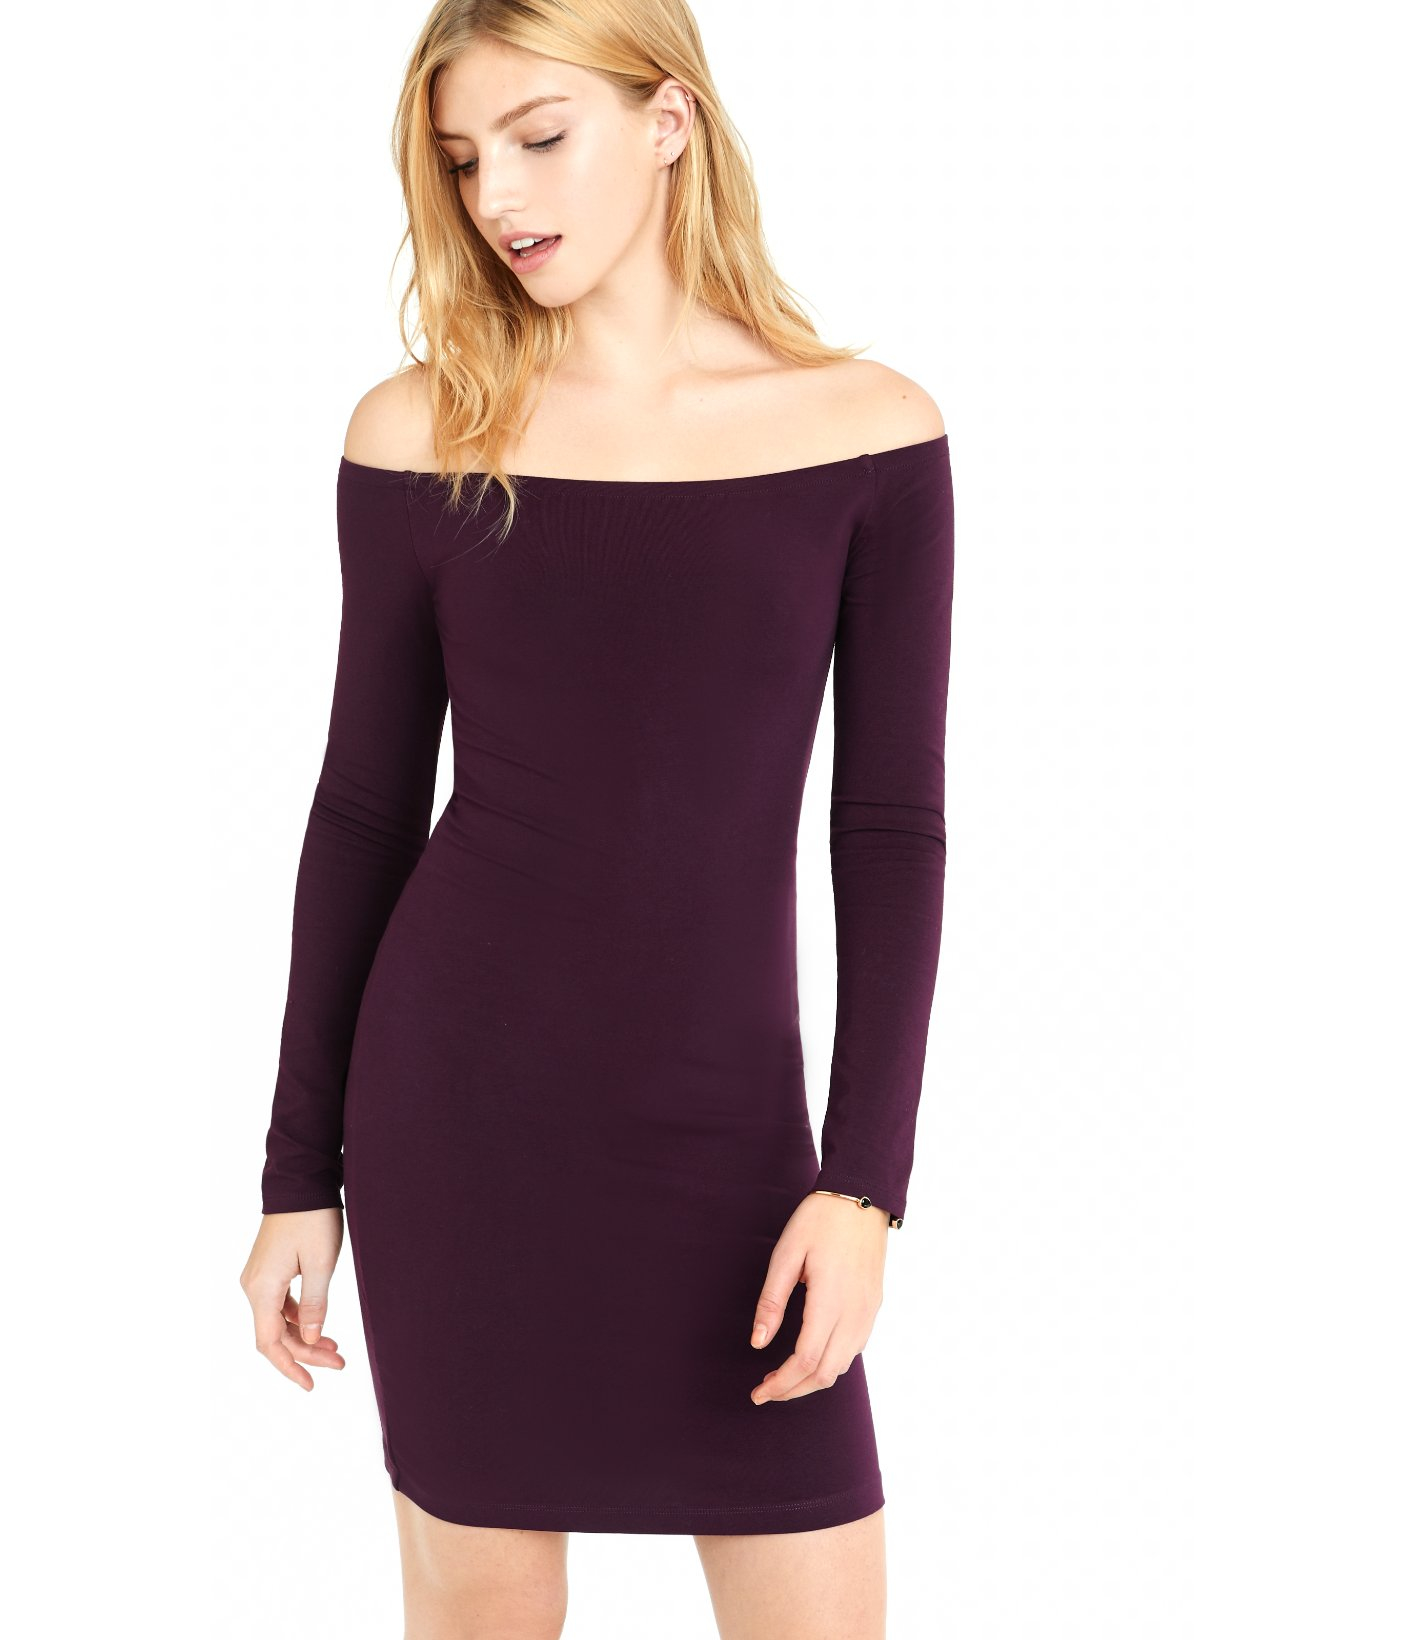 1dbb63b6eed2 Lyst - Express Currant Fitted Off The Shoulder Dress in Purple